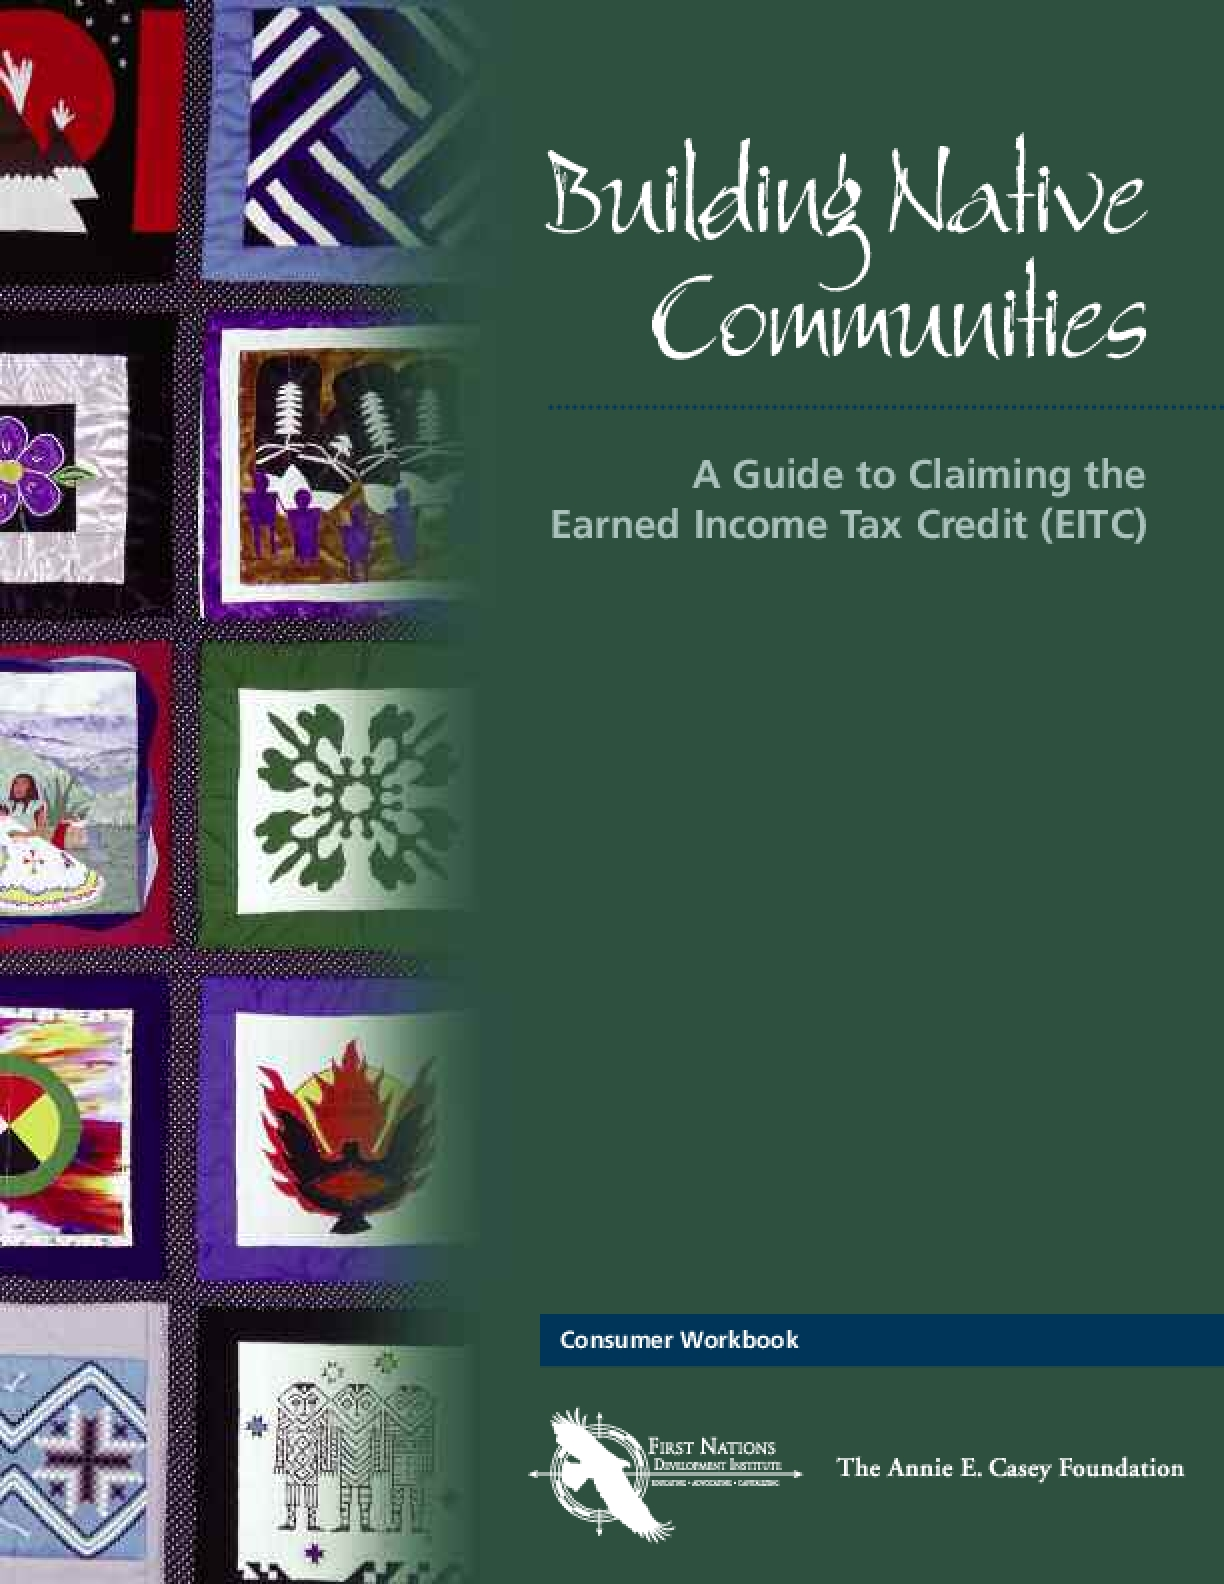 Building Native Communities: A Guide to Claiming the Earned Income Tax Credit (EITC)